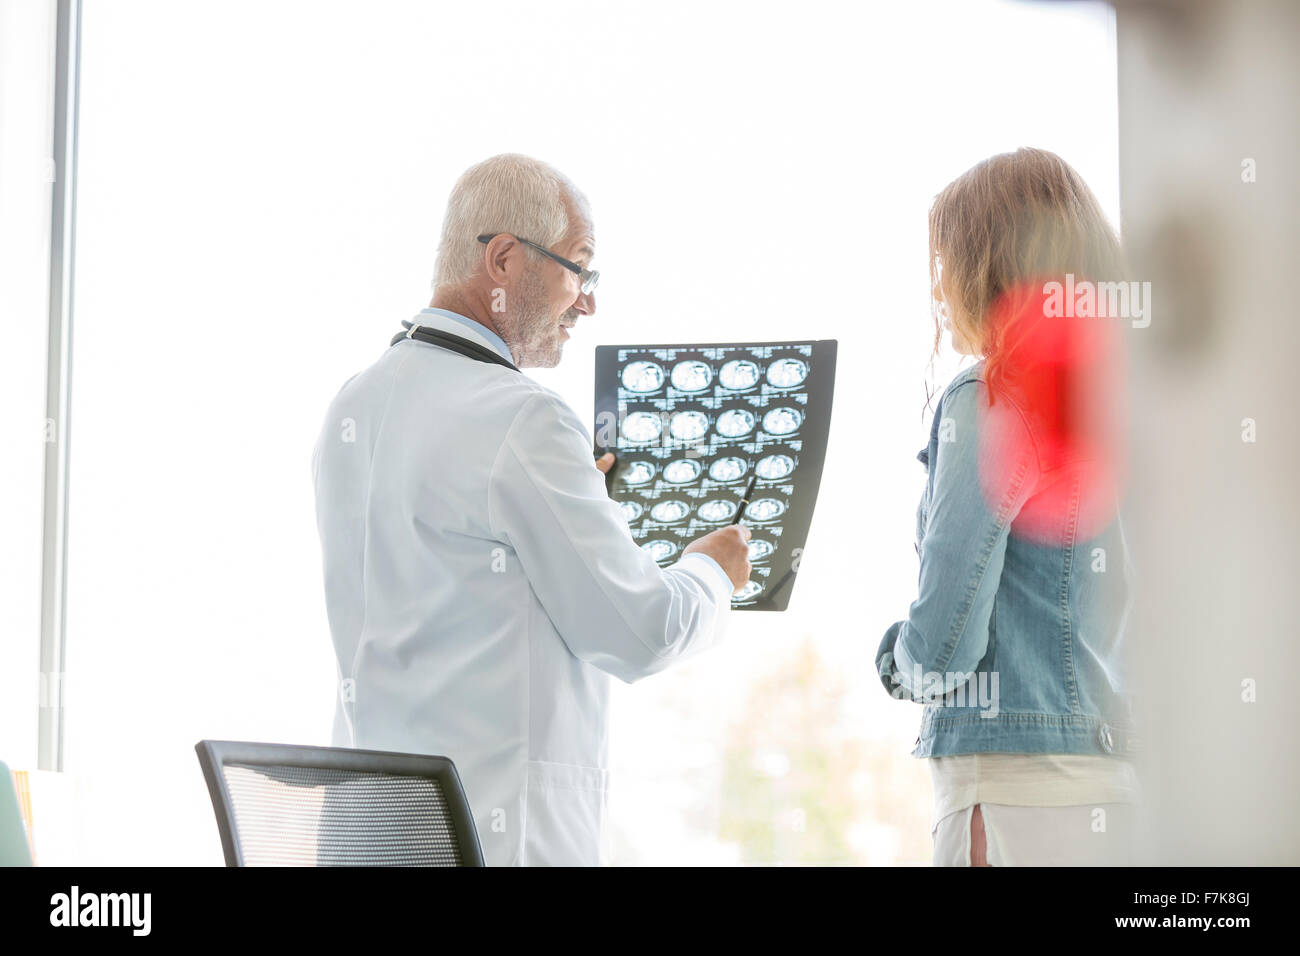 Doctor reviewing x-rays with patient in doctor's office - Stock Image